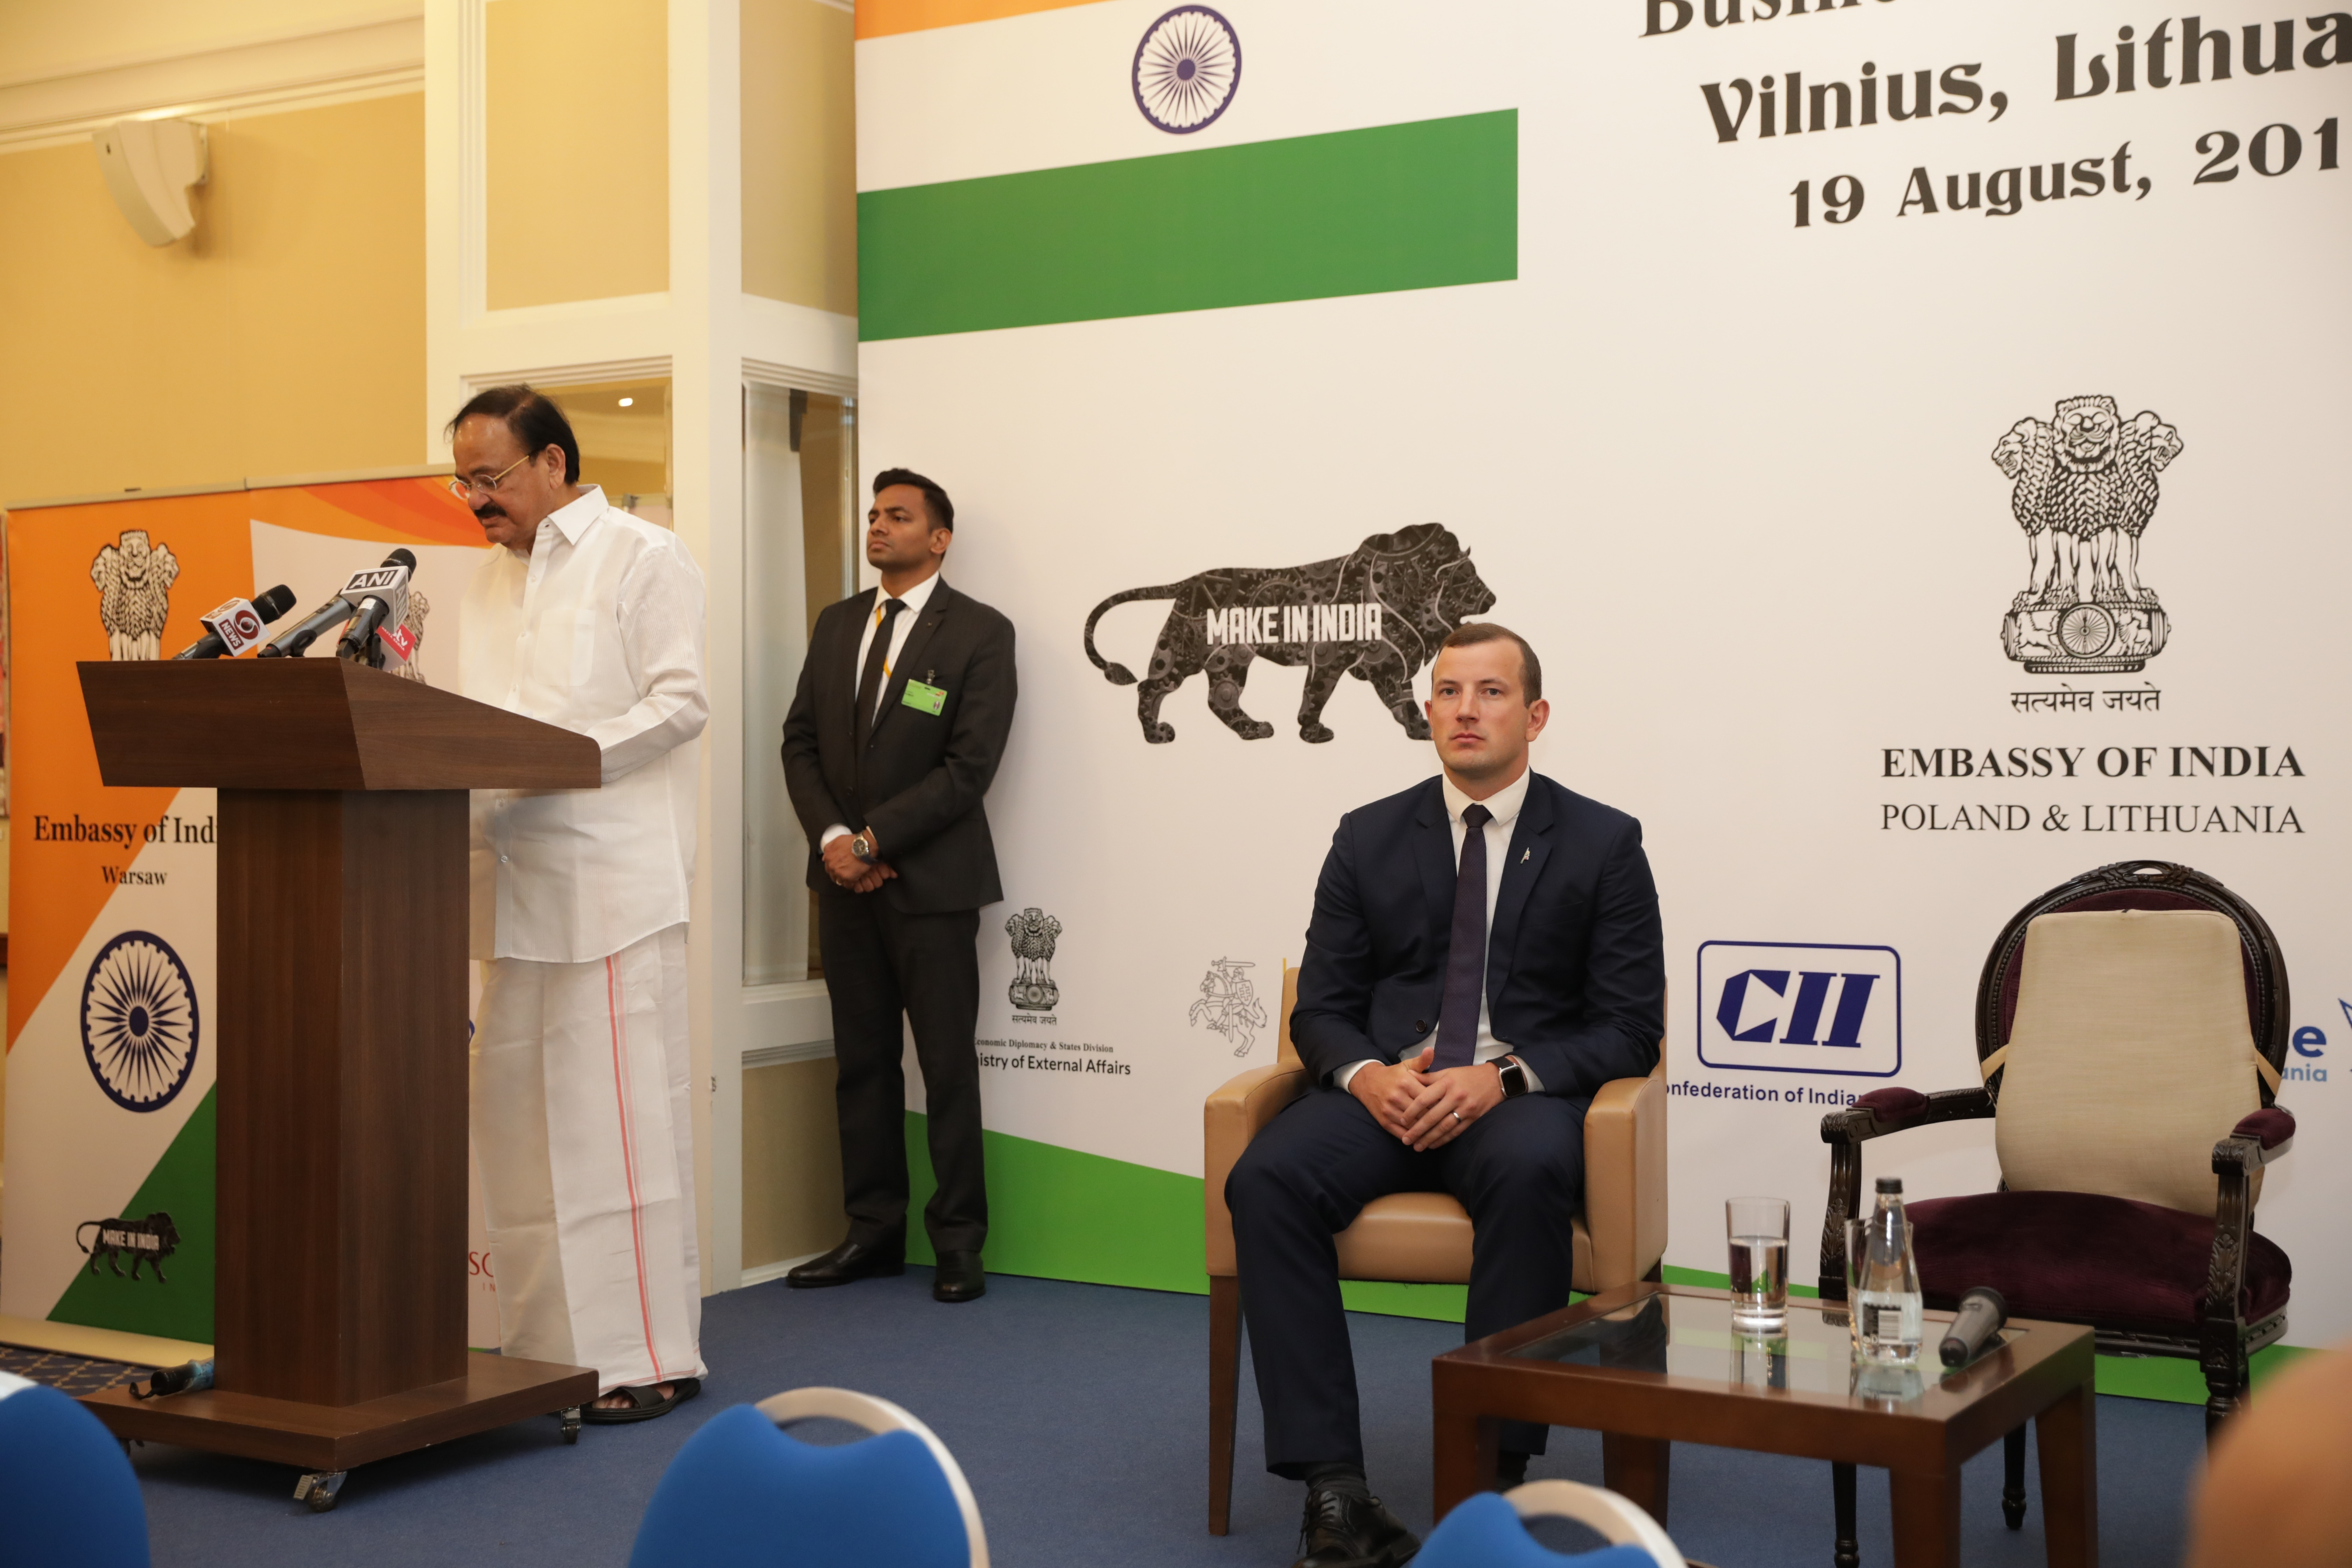 The Vice President, Shri M. Venkaiah Naidu addressing the gathering at the India-Lithuania business forum in Vilnius, Lithuania on August 19, 2019.